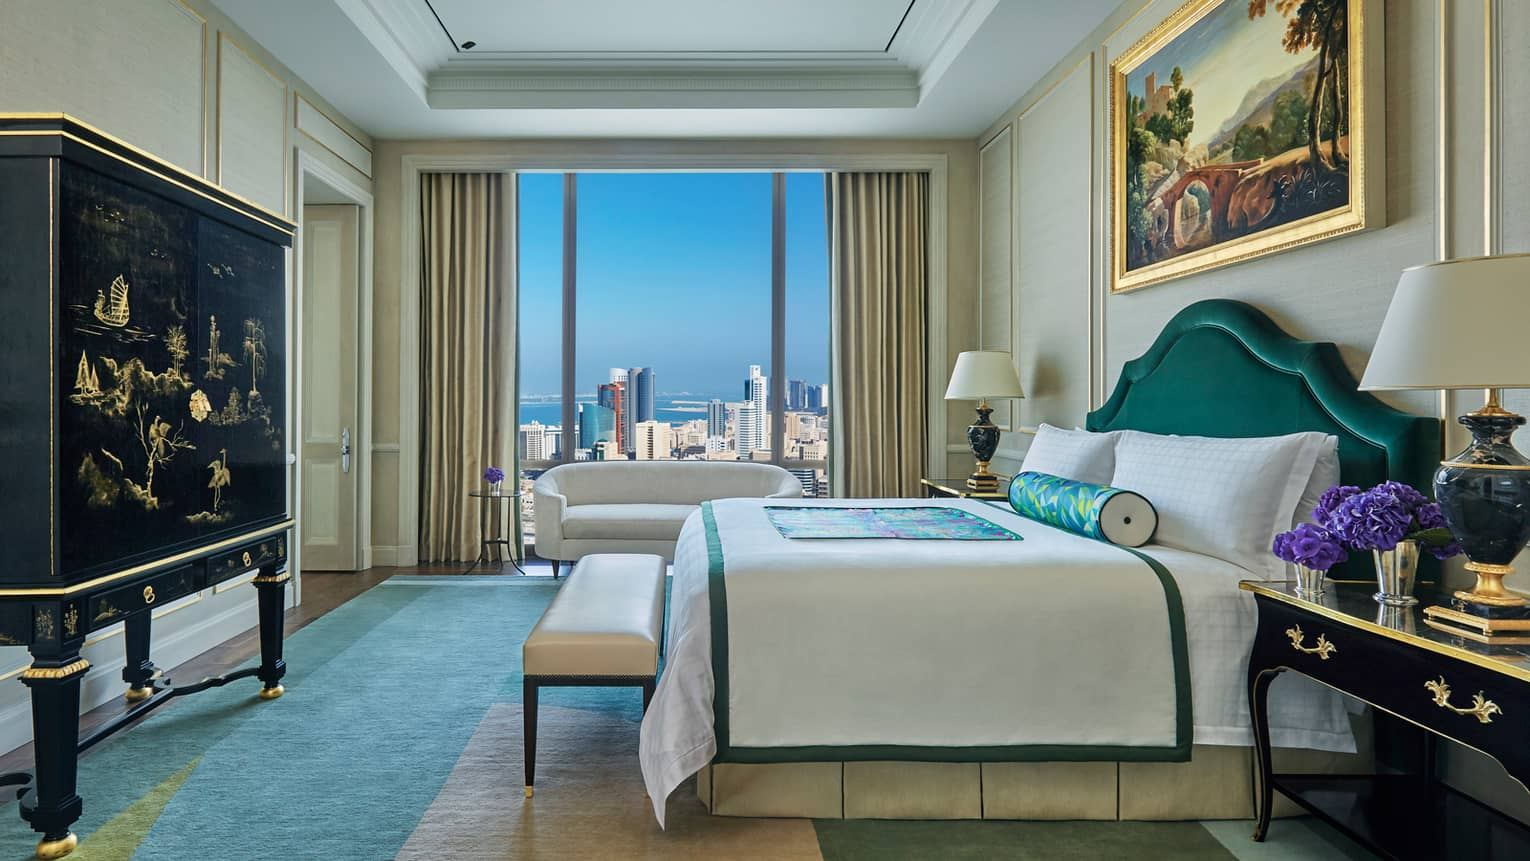 Presidential Suite side view of bed, bench at foot, decorative black dresser, window with city view